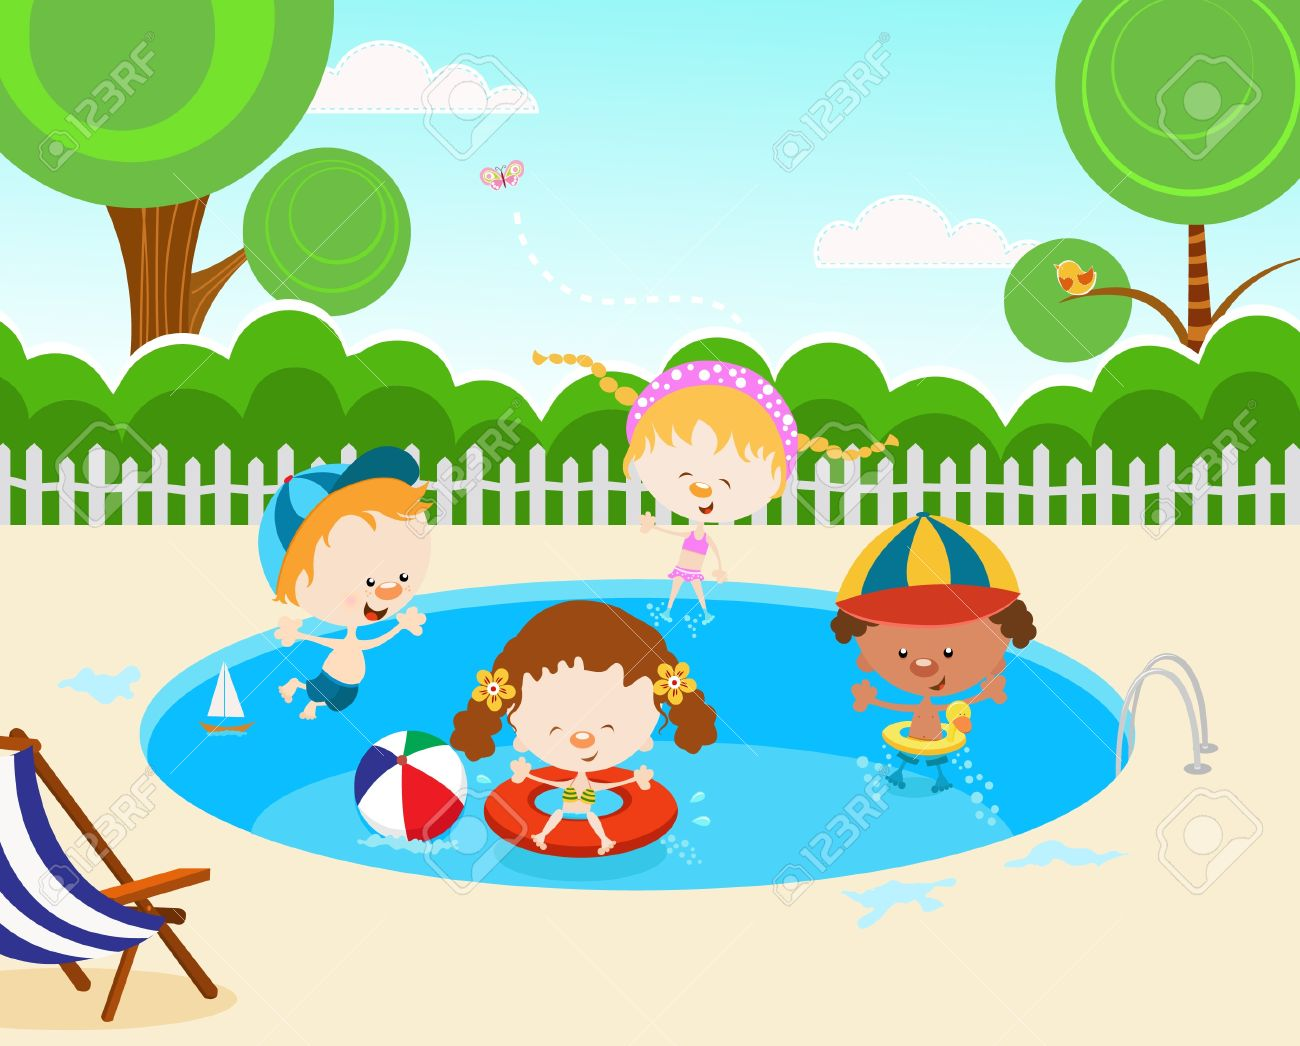 Children Swimming Pool Clipart.